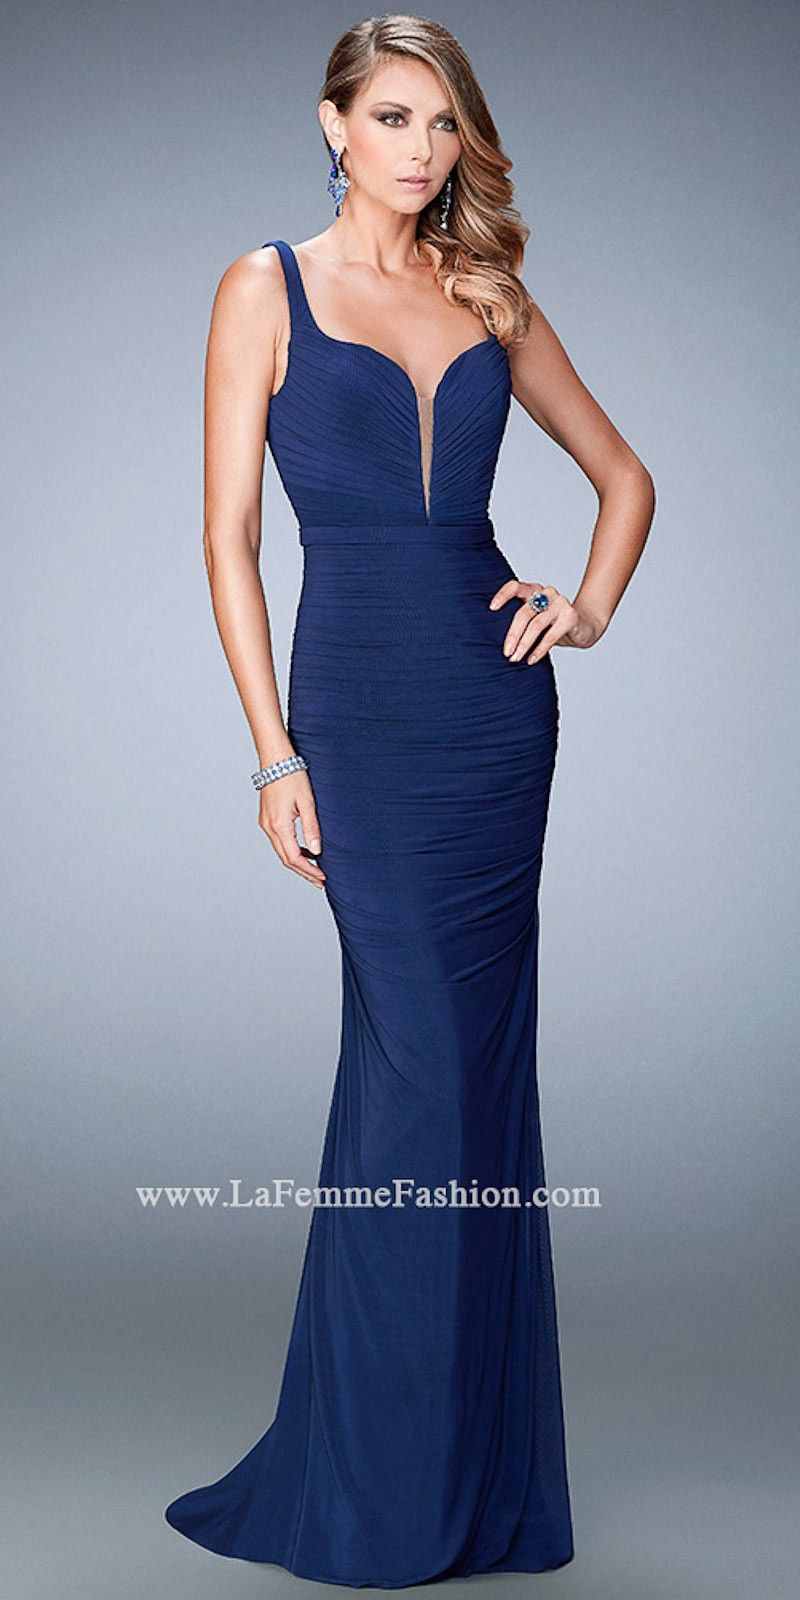 Ruched plunging neckline prom dress by la femme glitzy gowns